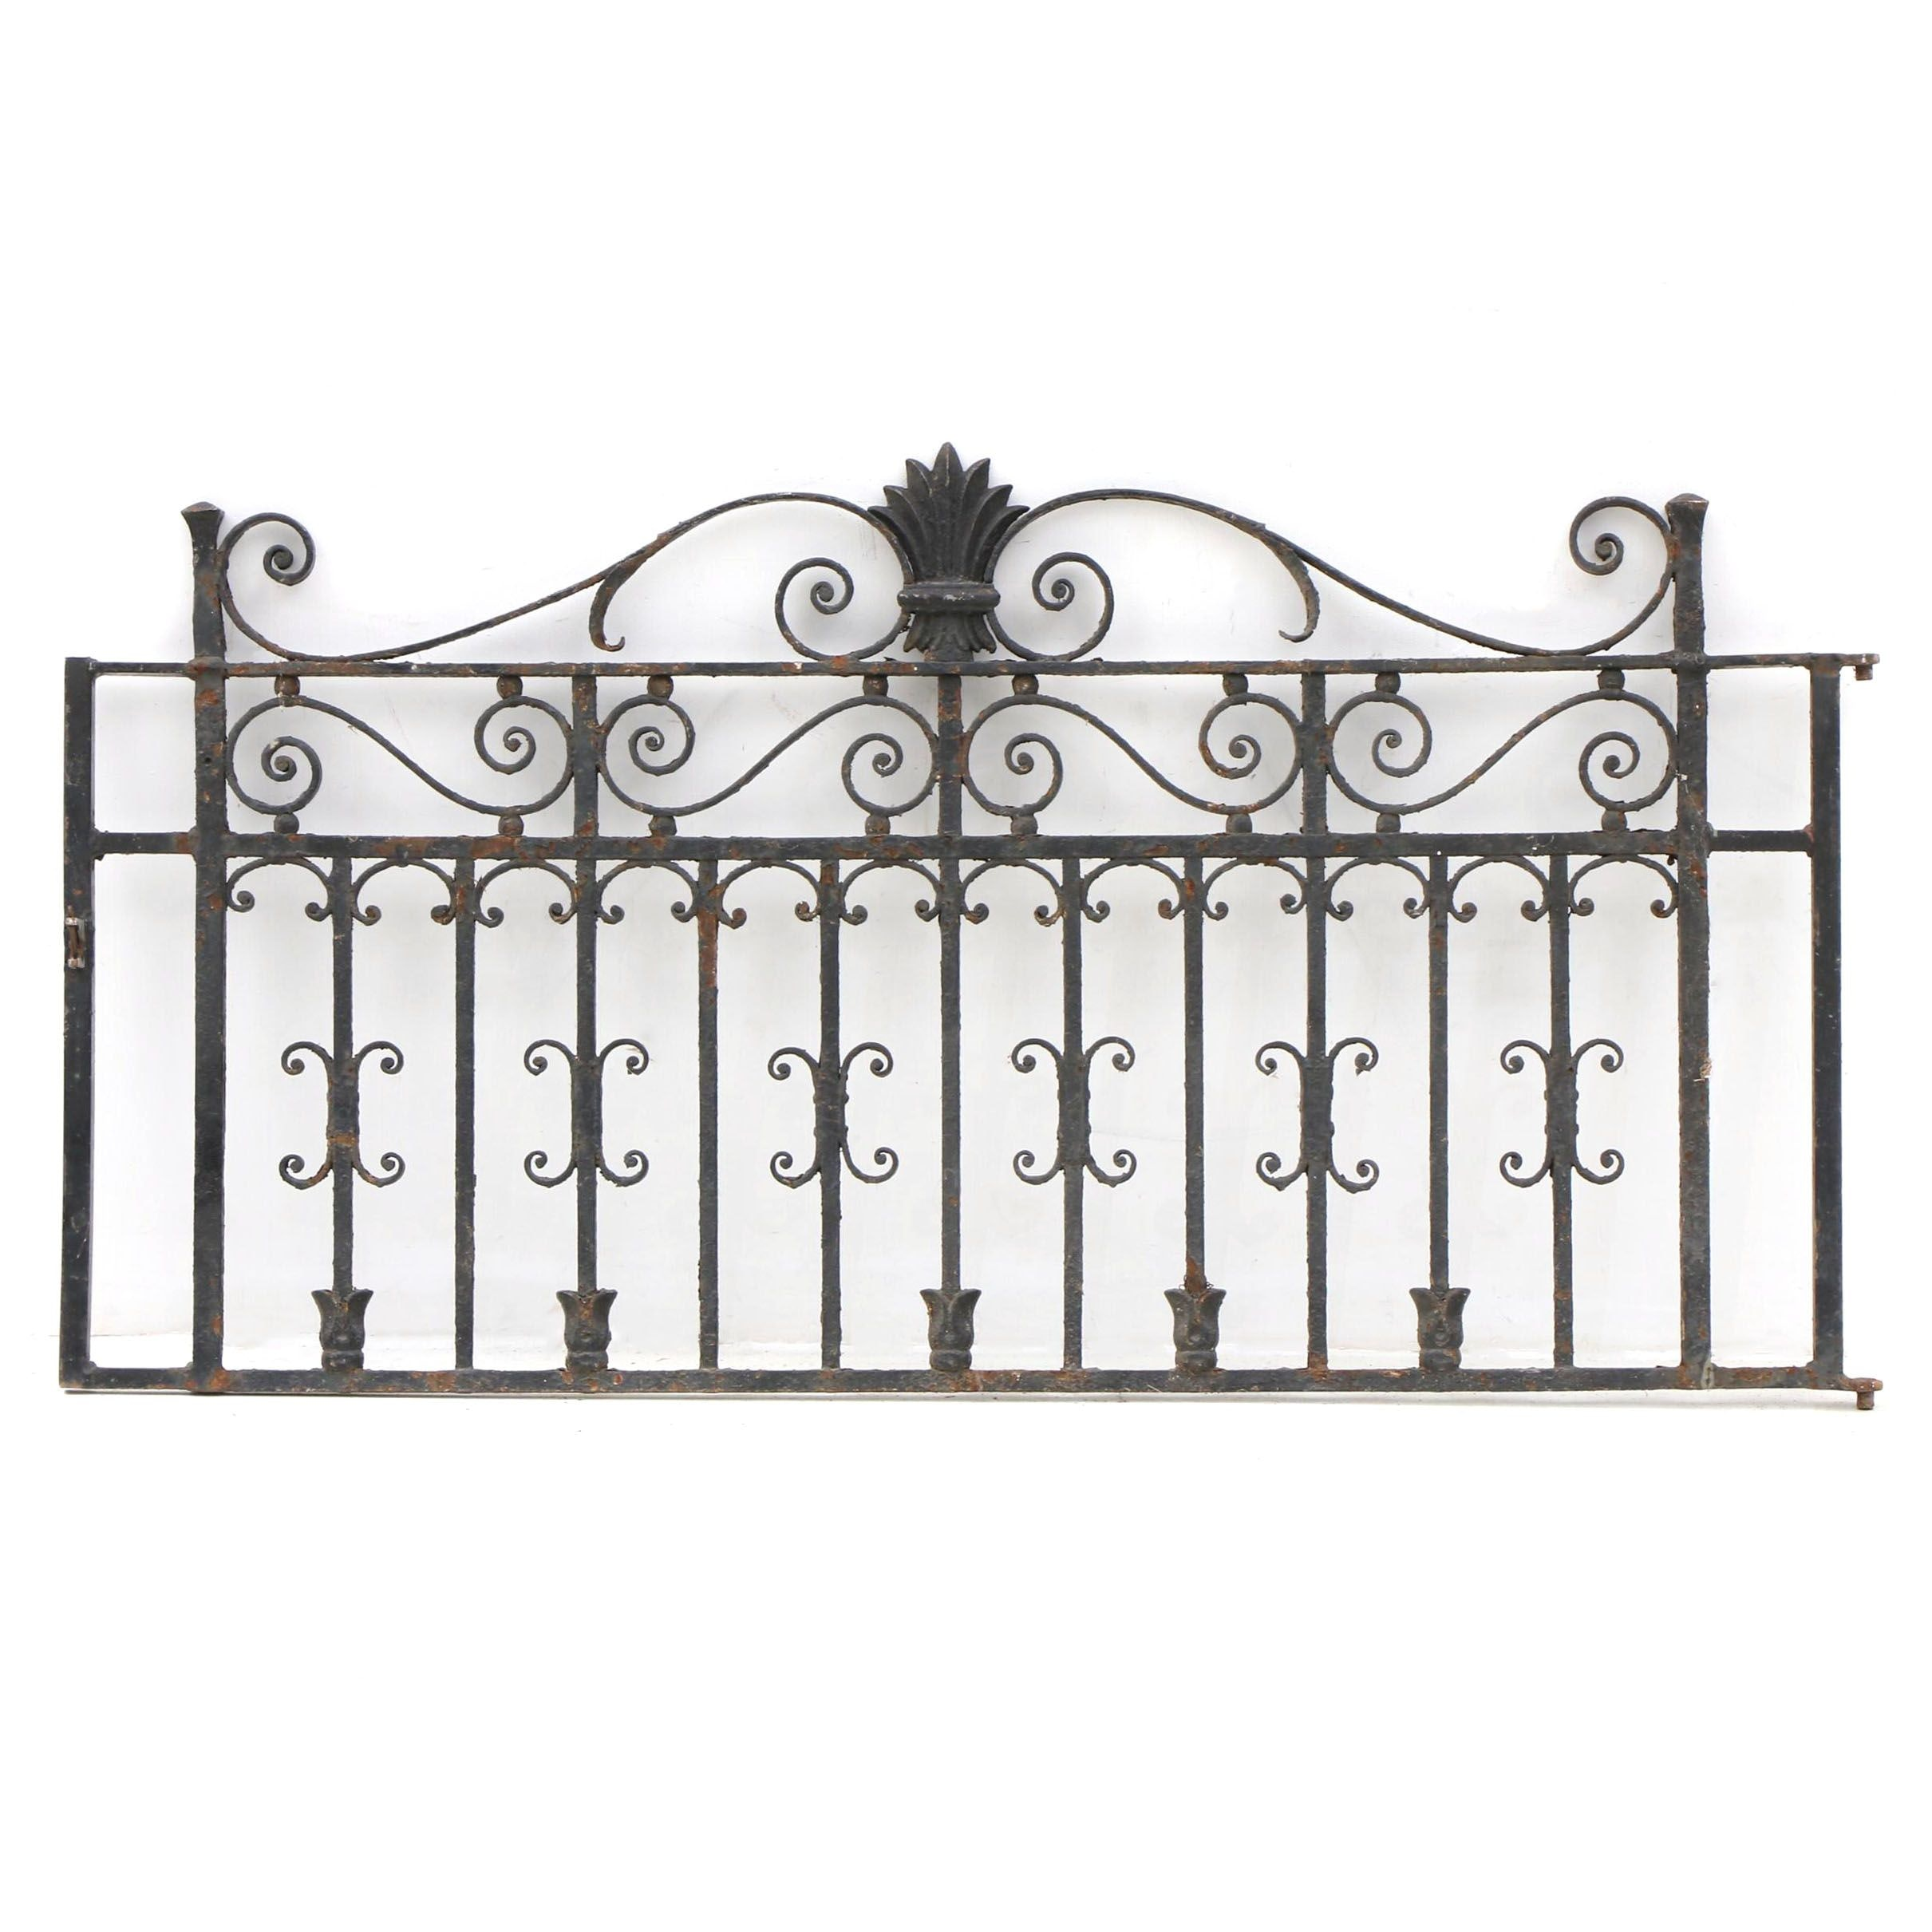 Early Wrought Iron Gate